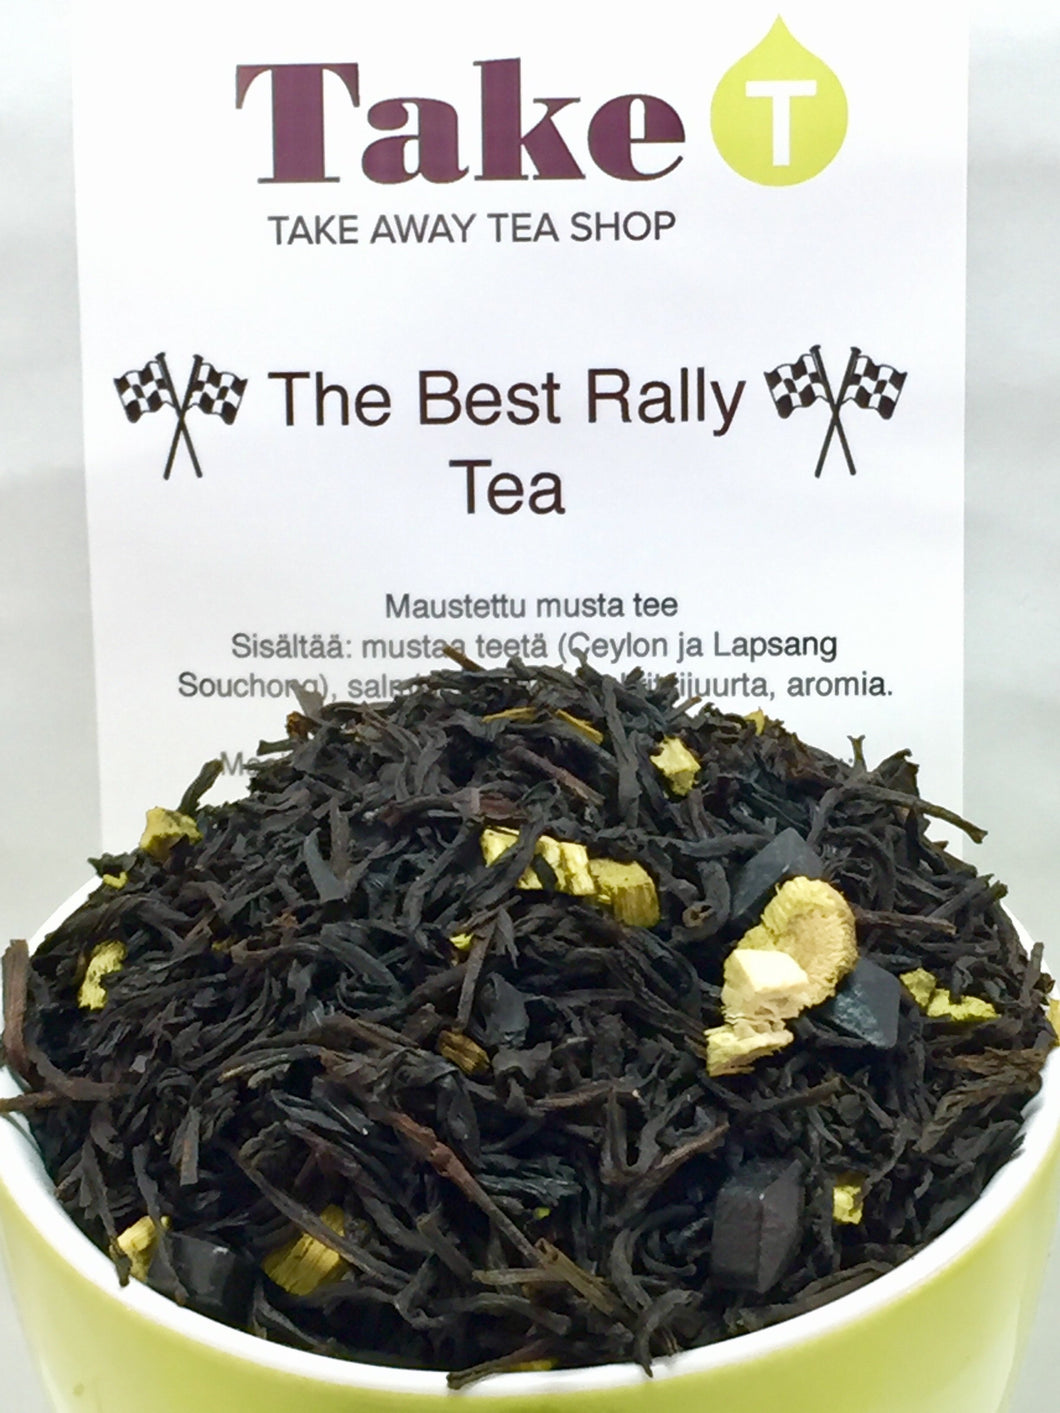 The Best Rally Tea